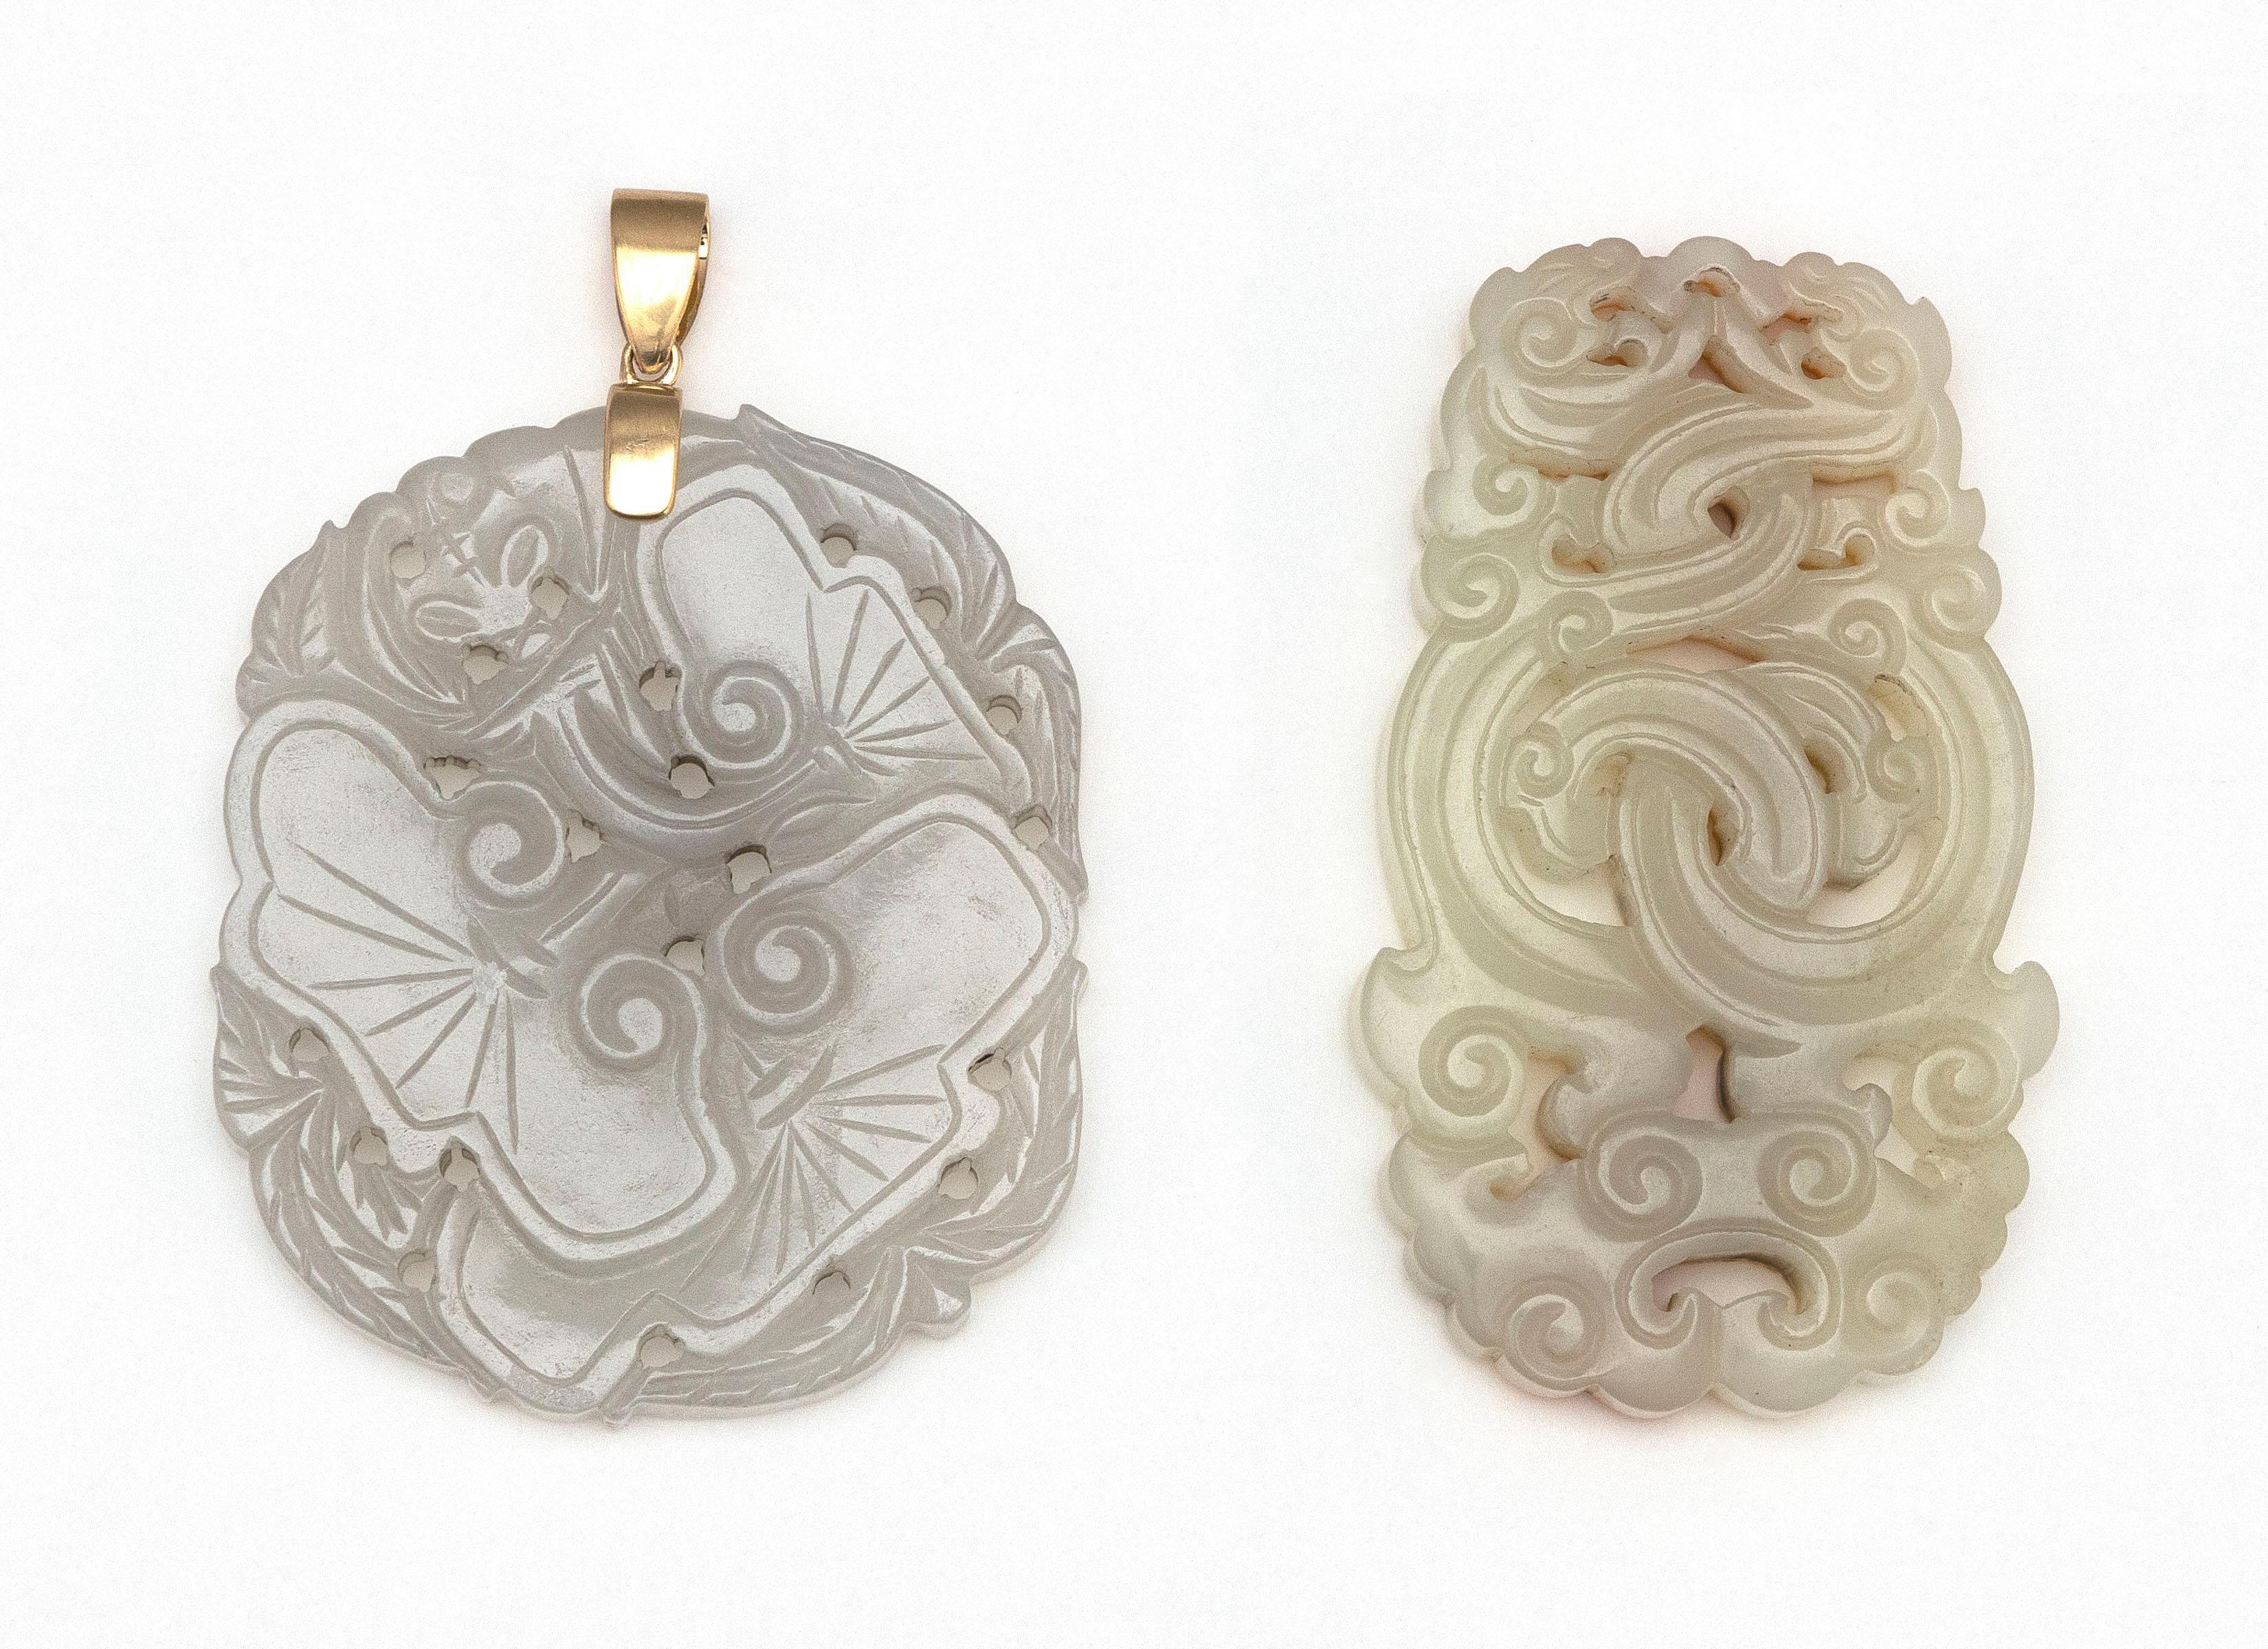 """TWO CHINESE CARVED WHITE JADE PENDANTS 1) Openwork-carved in the form of entwined ruyi. Some russet skin tones. Length 2.5"""". 2) In t..."""